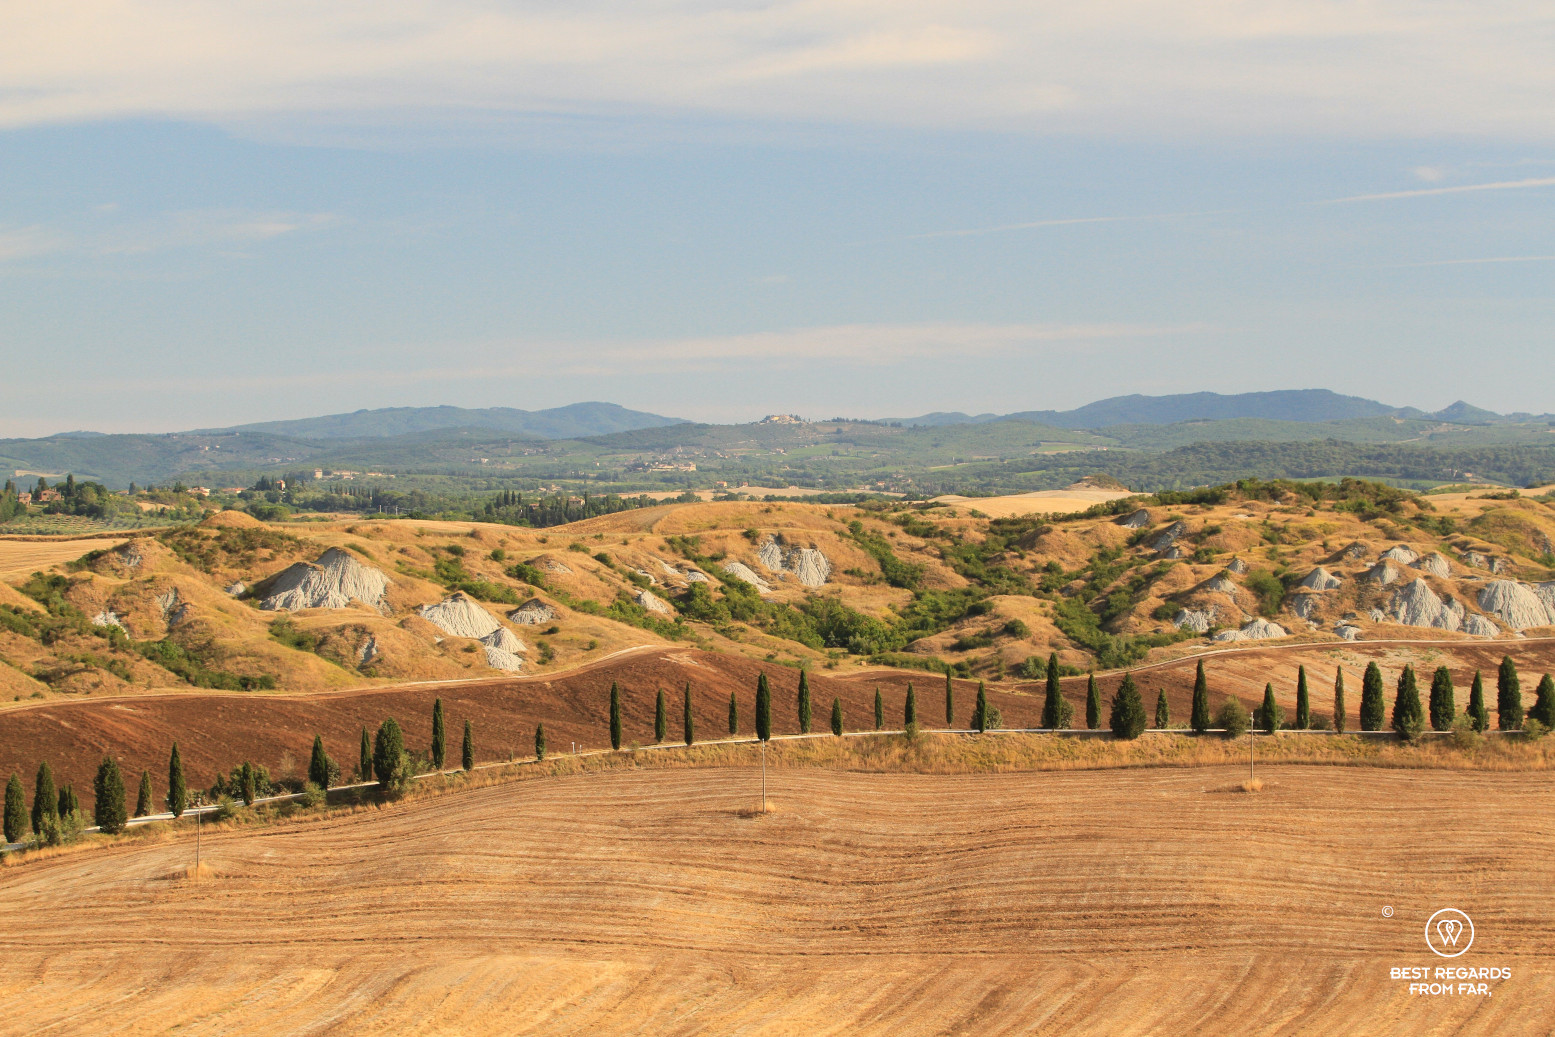 Typical Tuscan landscape with wheat fields and cypress trees, Italy